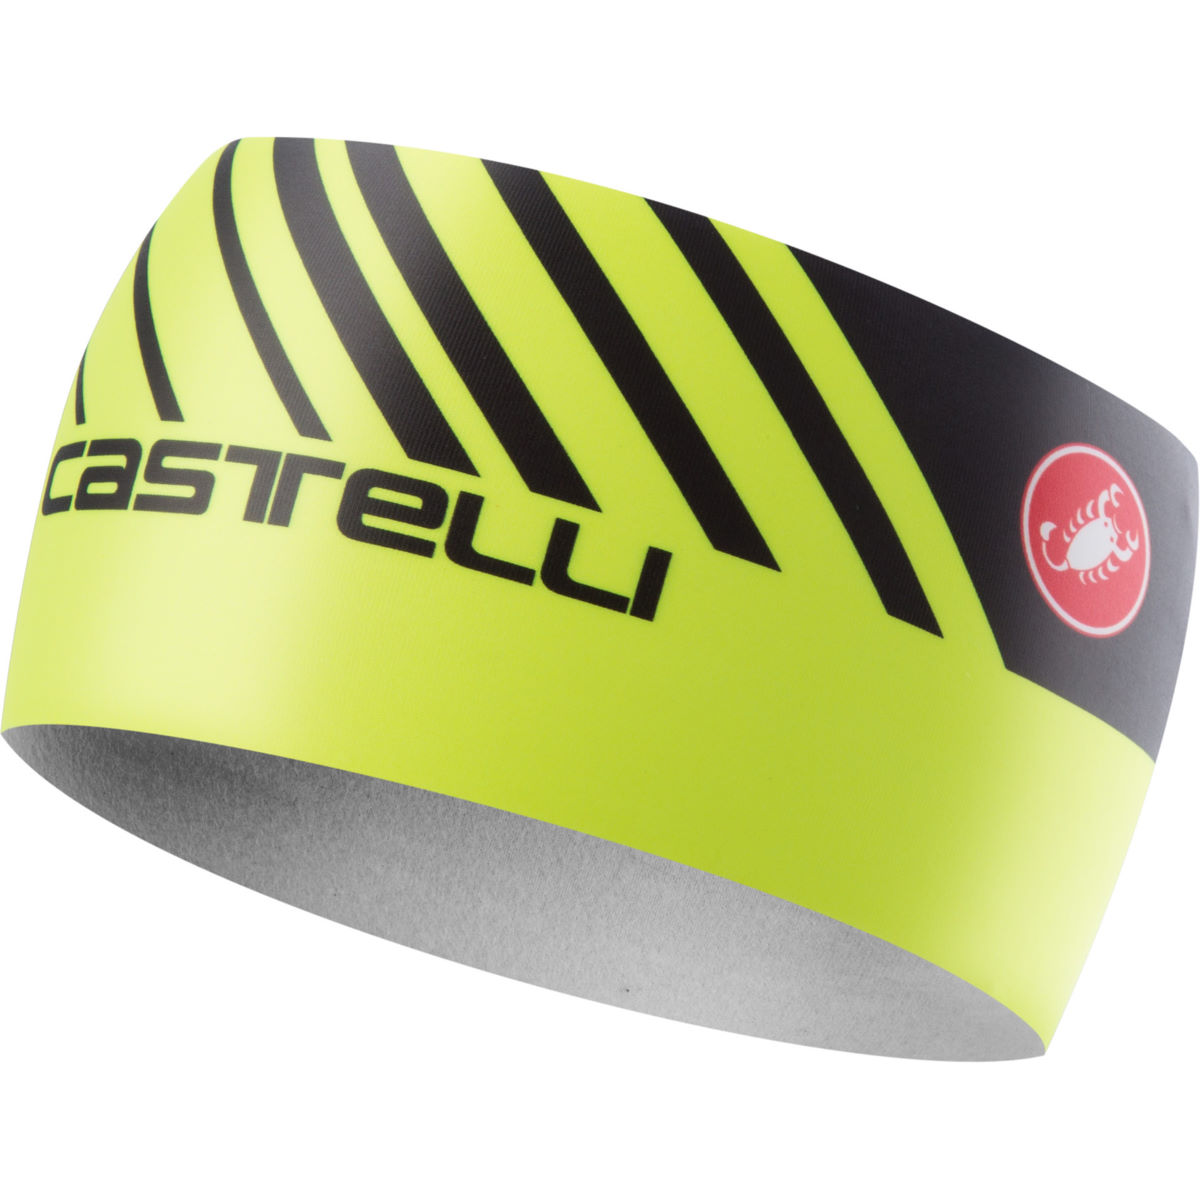 Image of Bandeau Castelli Arrivo 3 (thermique) - One Size Yellow Fluo